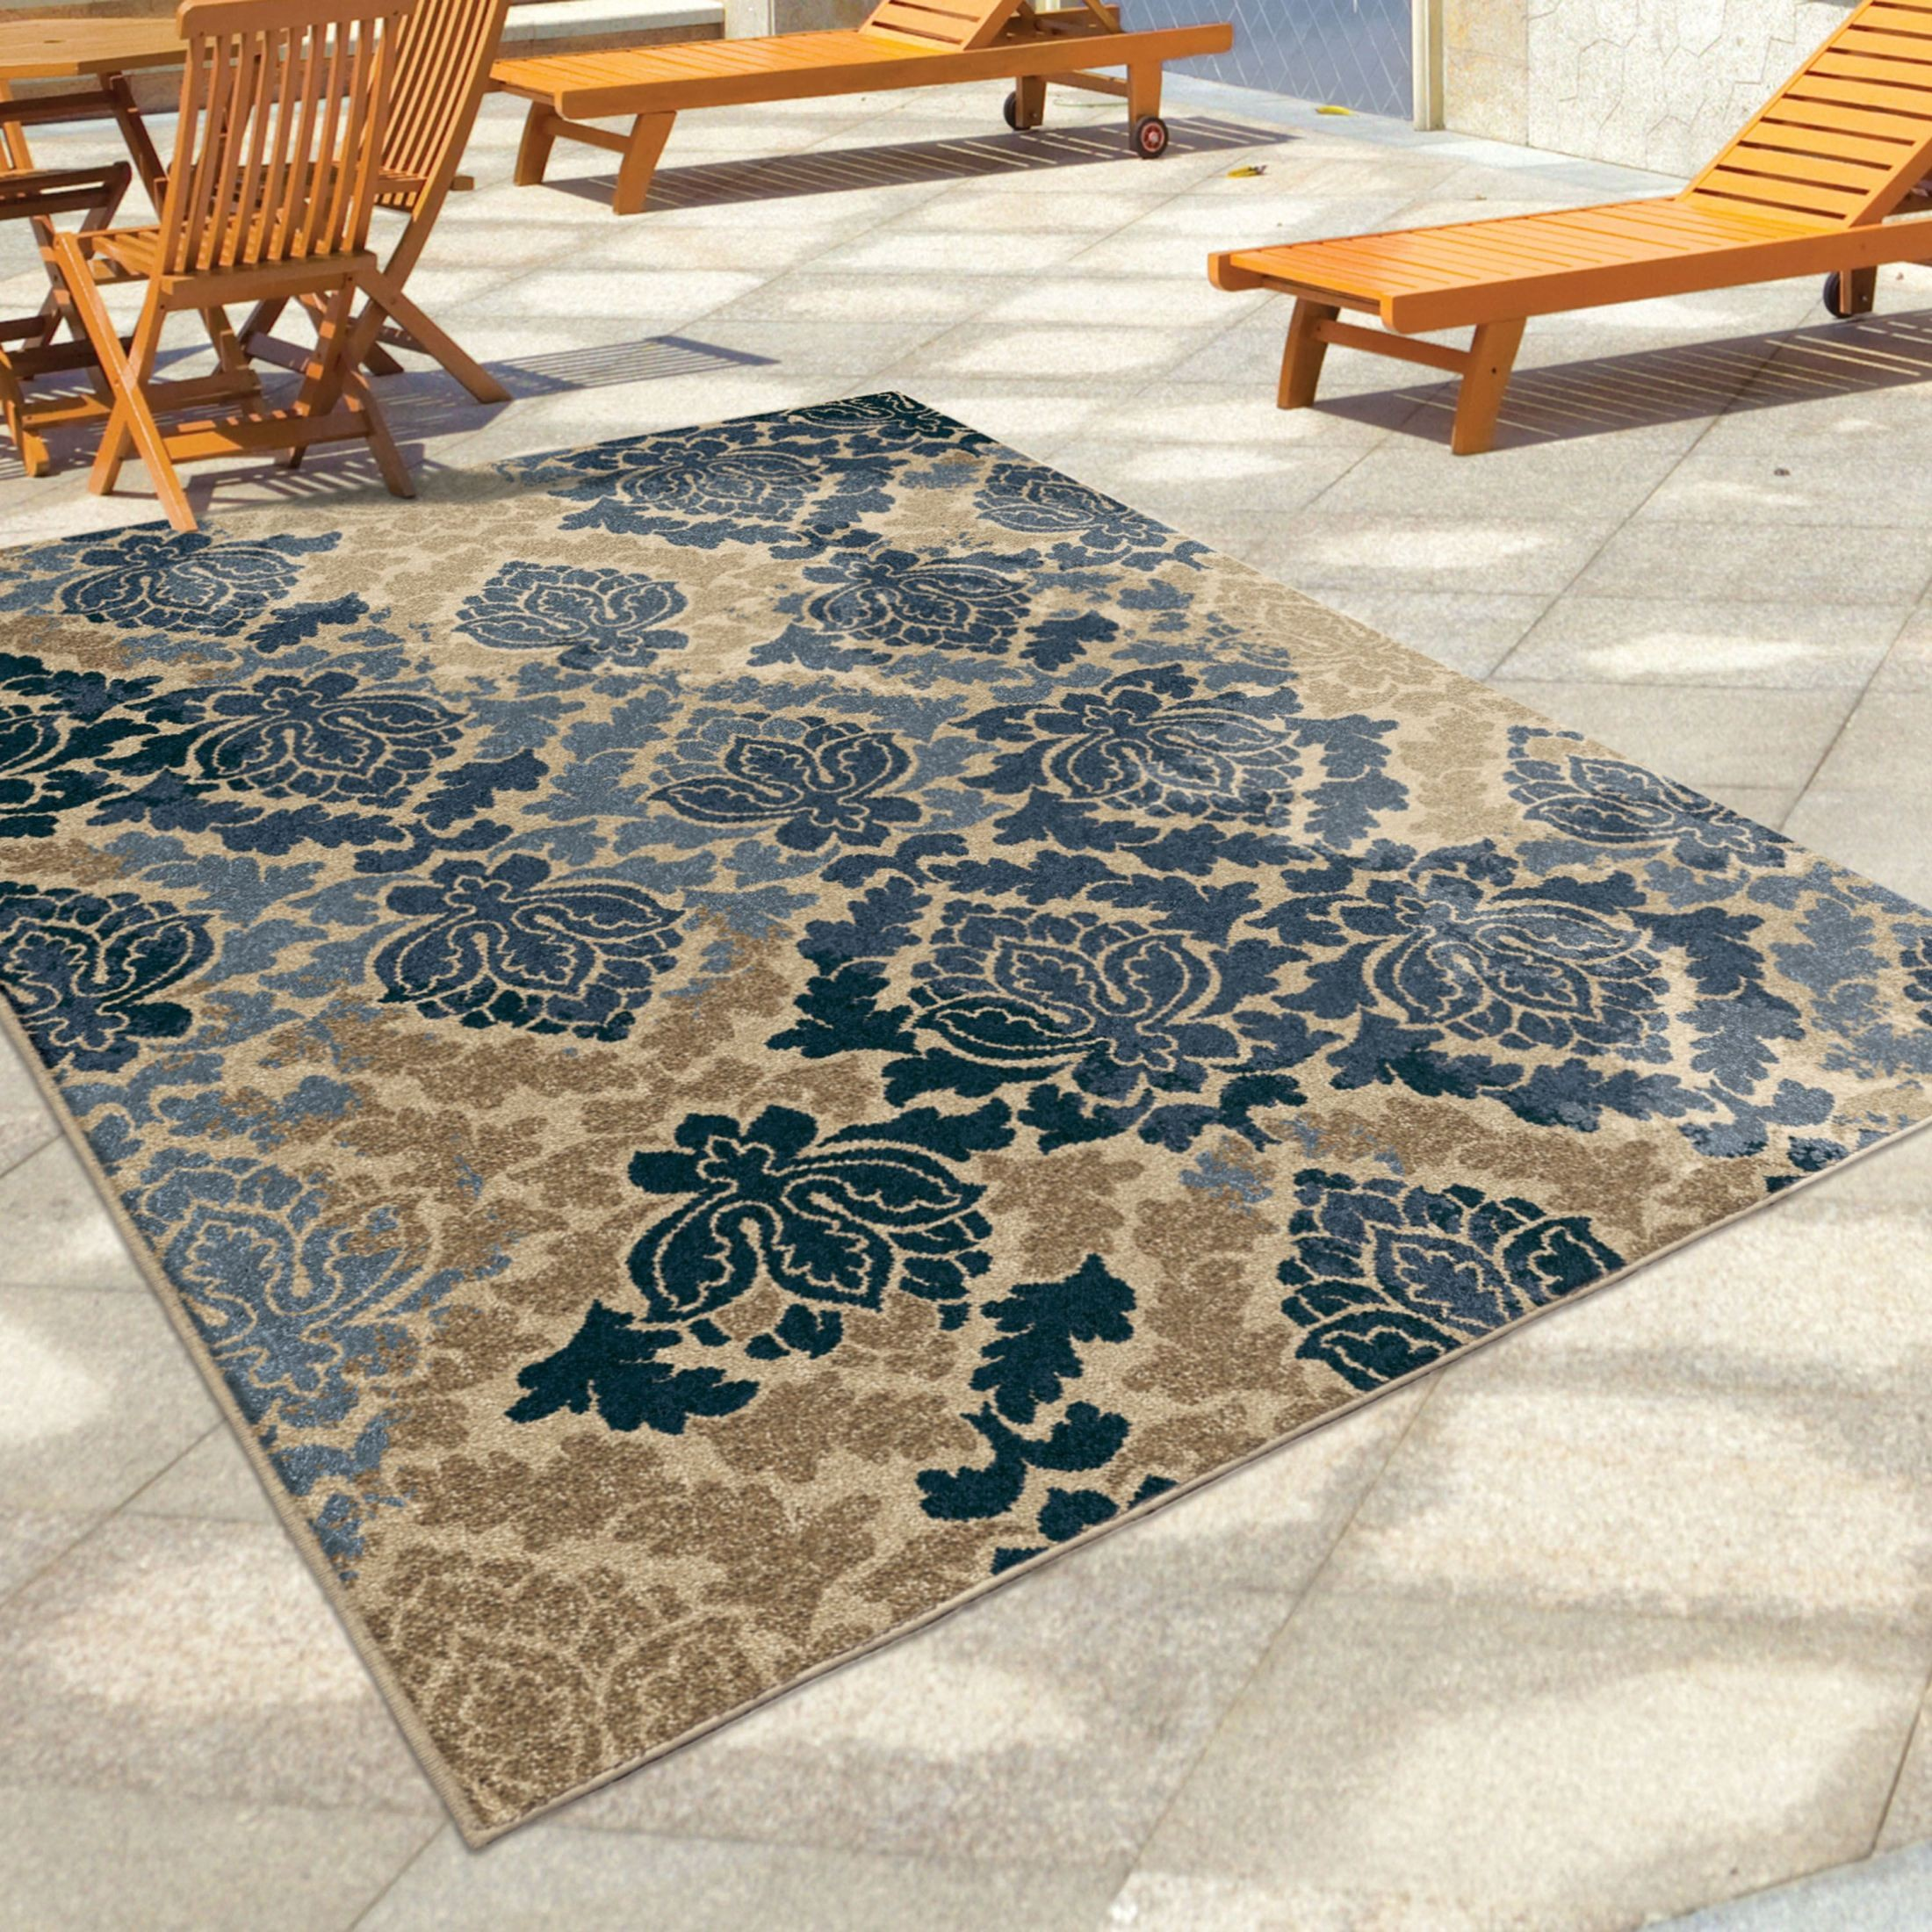 Discount 8x11 Area Rugs: Four Seasons Indoor/Outdoor Leaves Allover Damask Multi